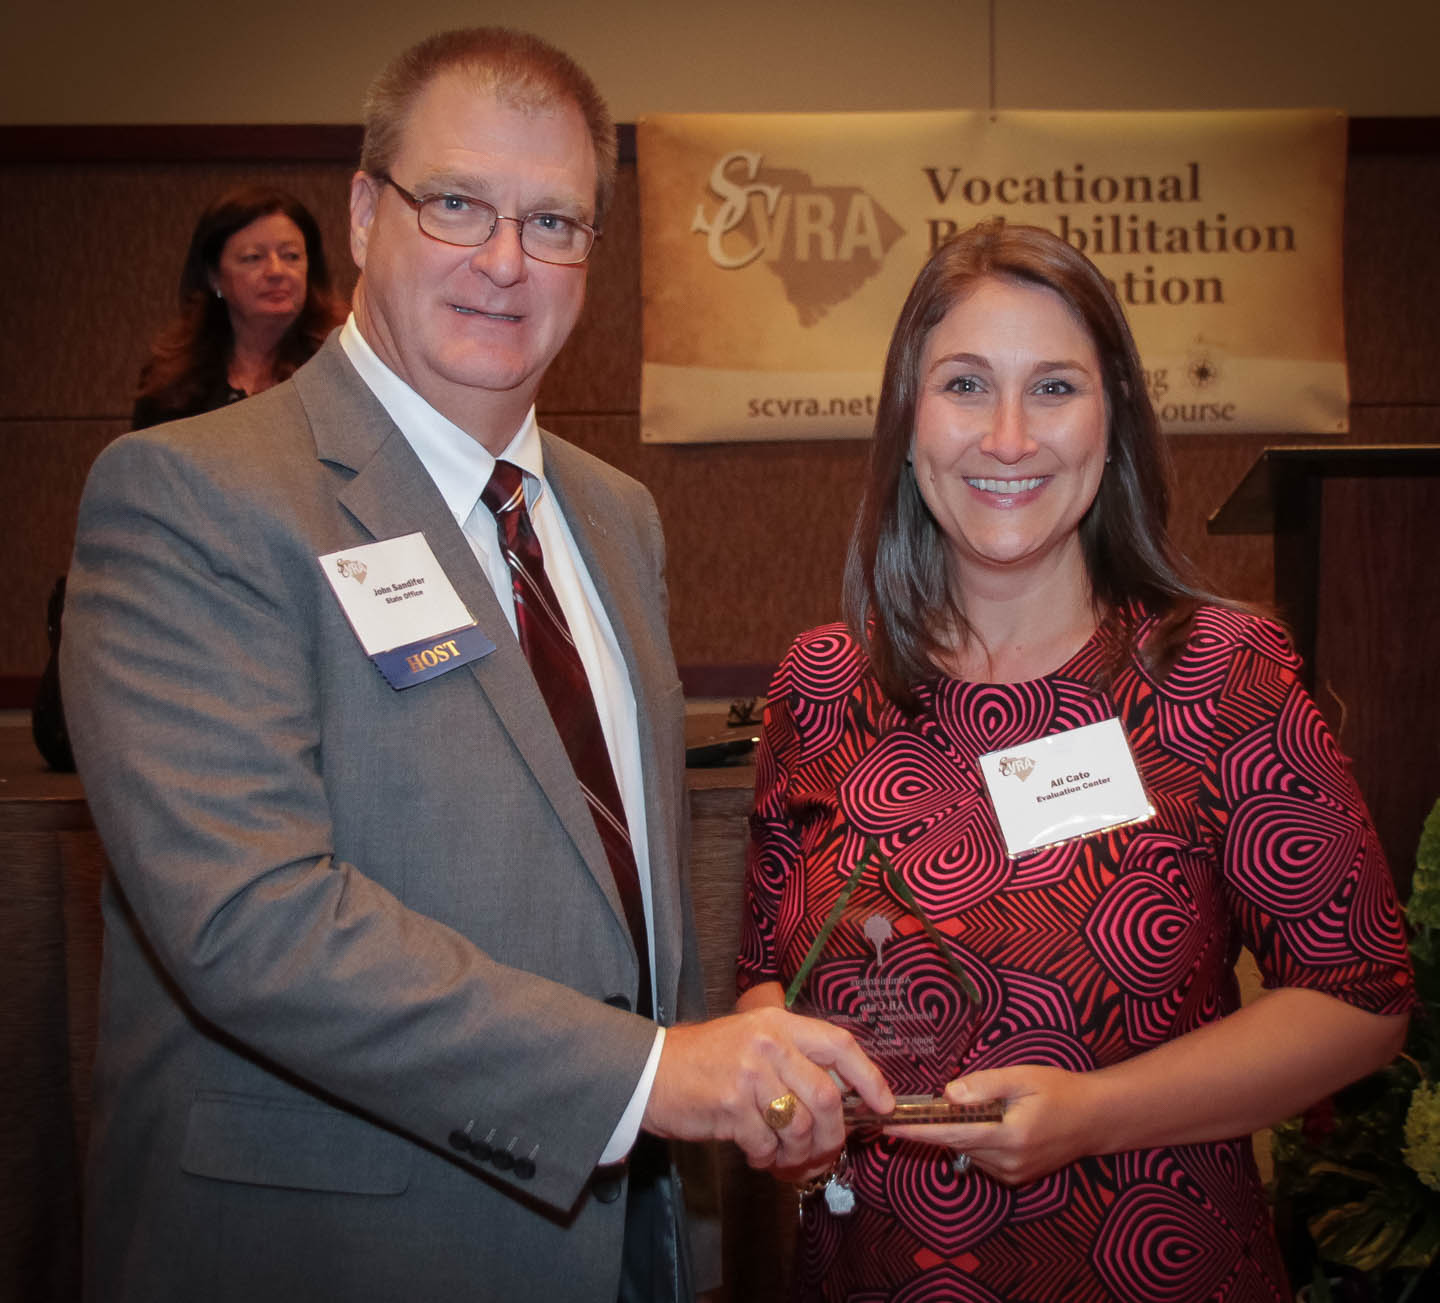 Ali Cato (right), Comprehensive Program Supervisor at the Evaluation Center in West Columbia, receives the Administrator of the Year award from the SCVRA Administrators Association from John Sandifer, SCVRAA President.